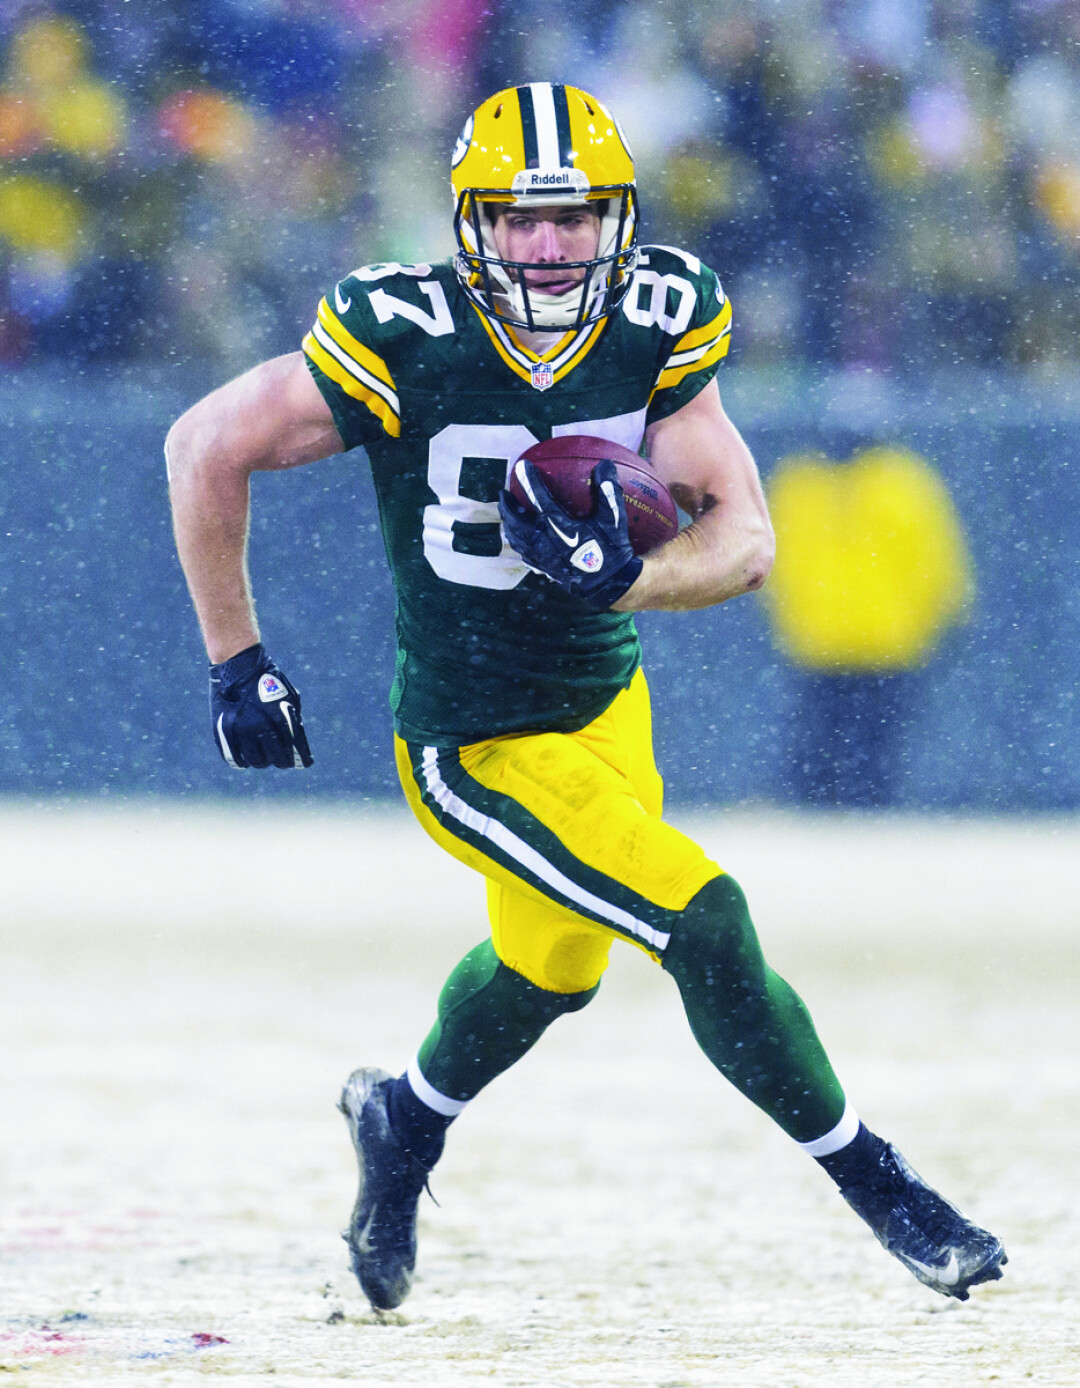 Packers wide receiver Jordy Nelson (right) returns this year, after a torn ACL kept him off the field for the entirety of last year's regular season.